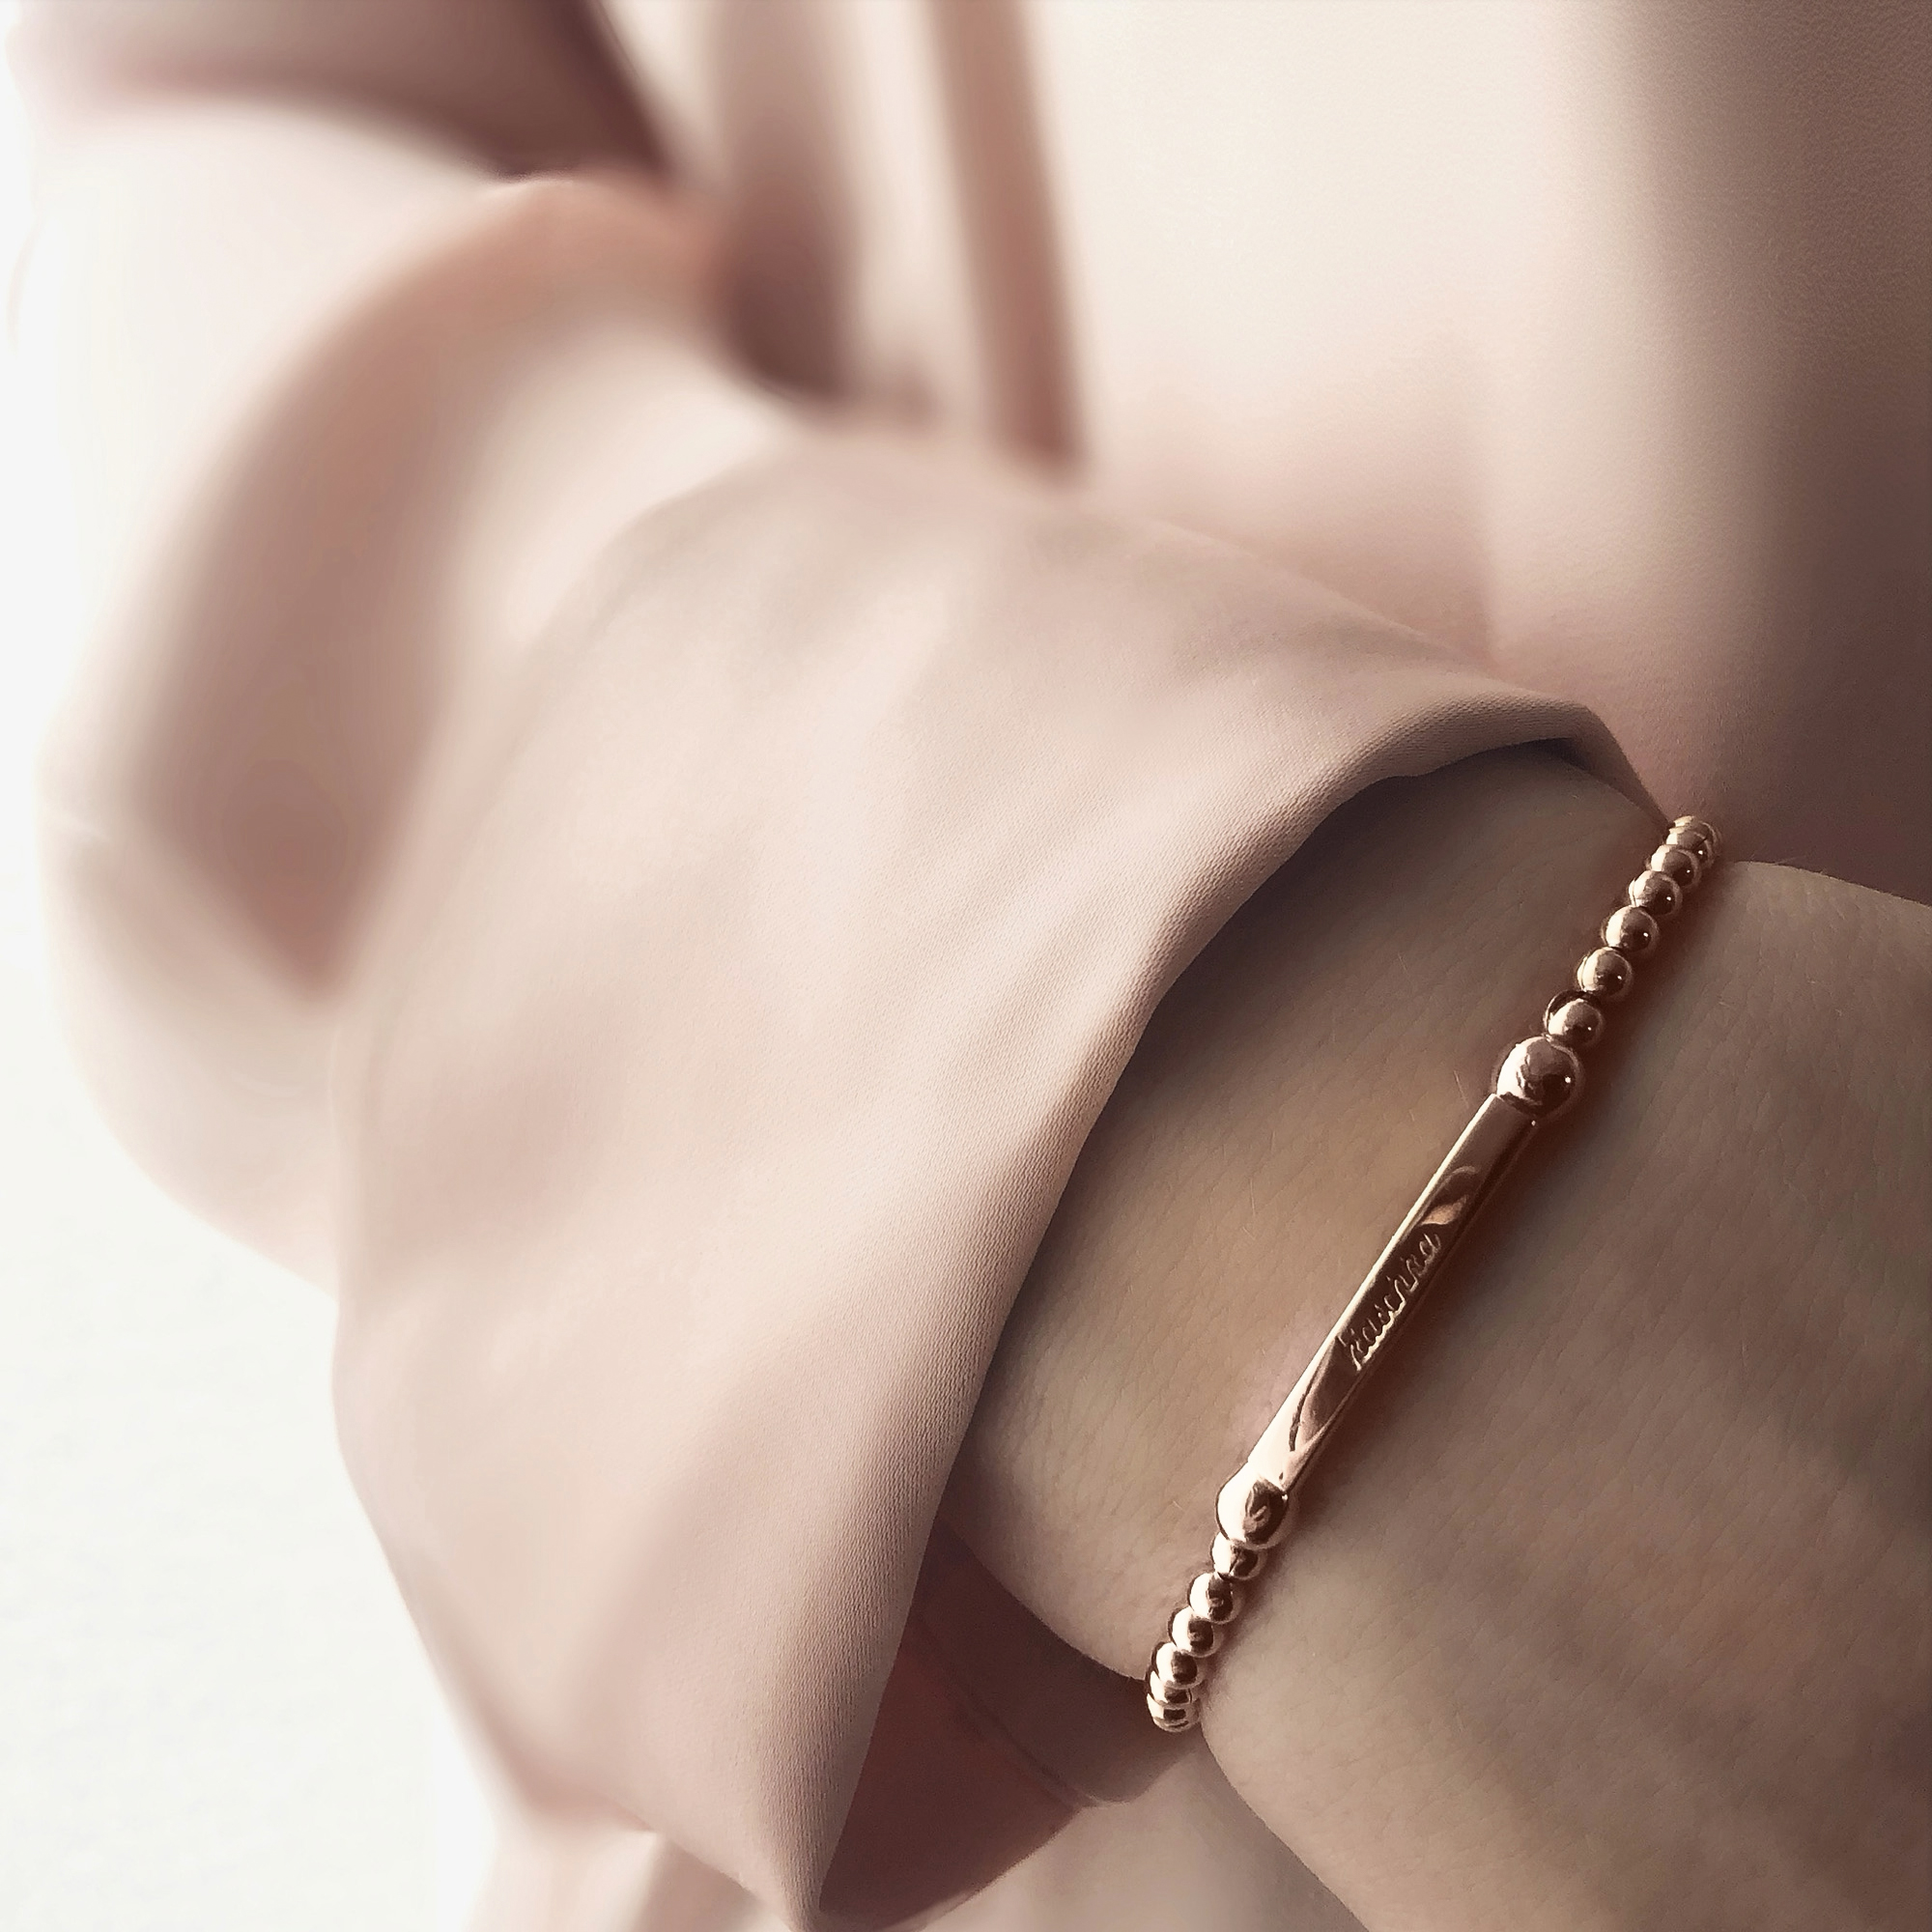 armband met staafje rosé